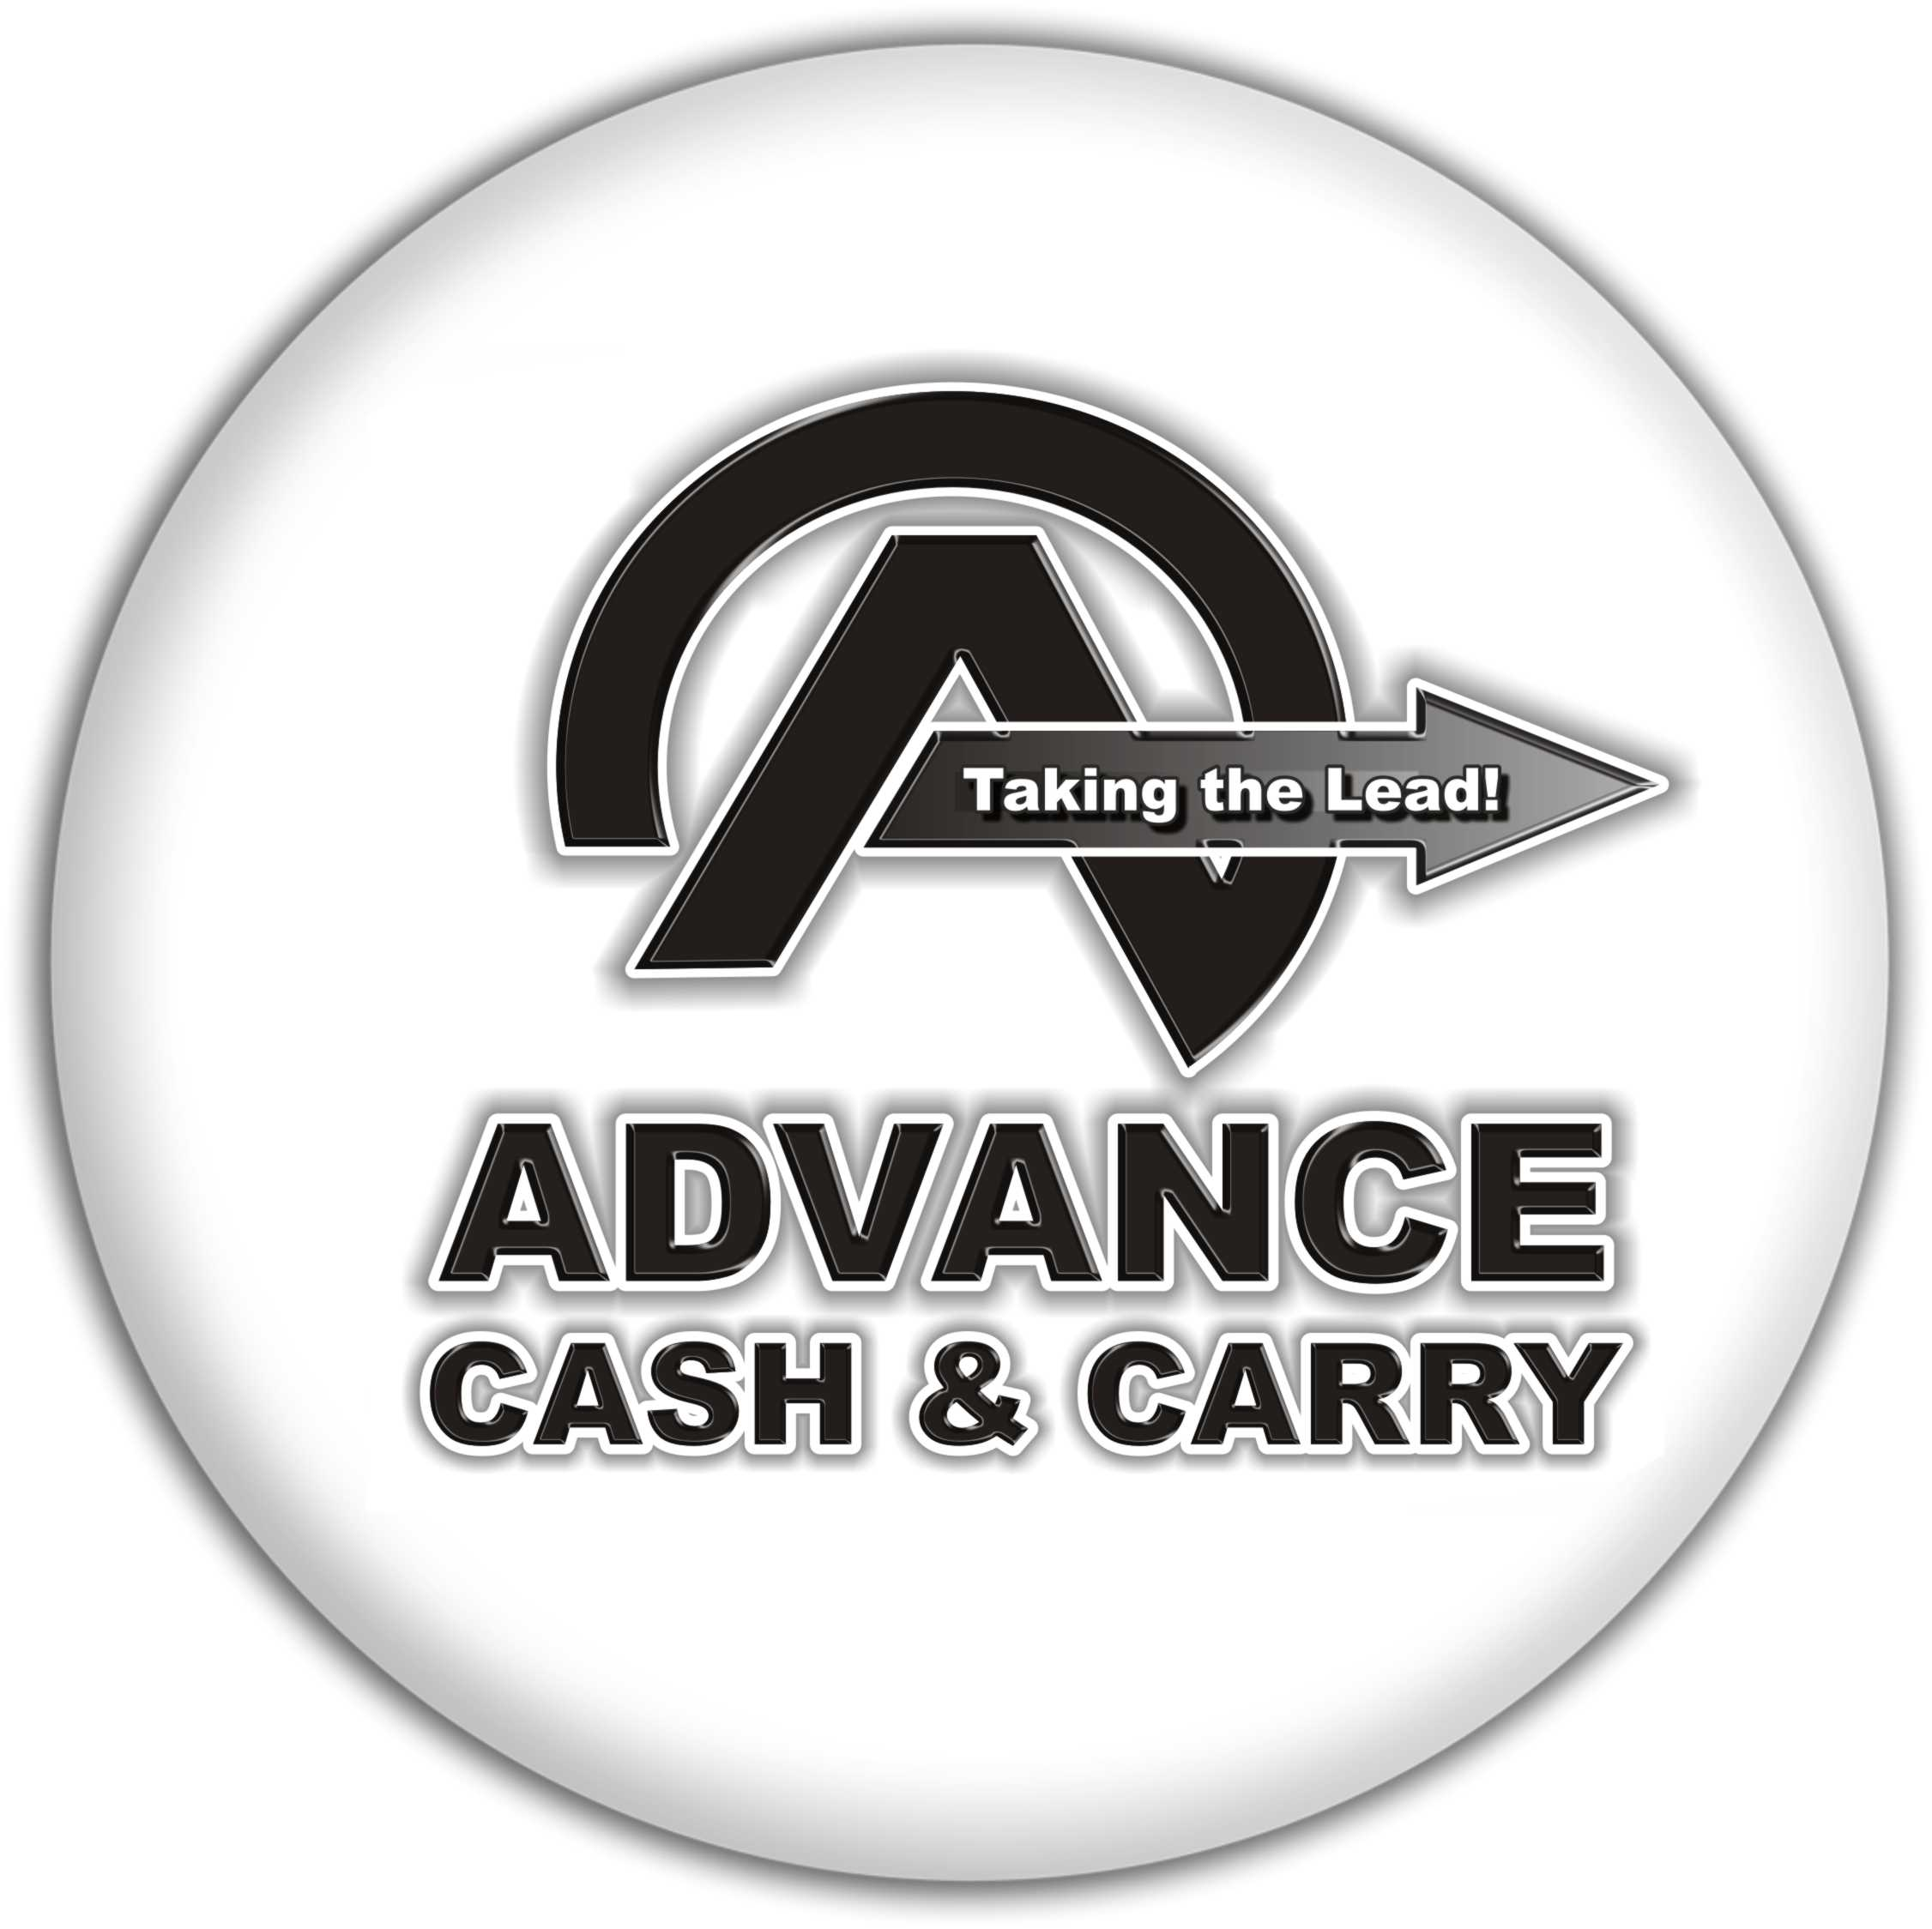 Advance Cash & Carry